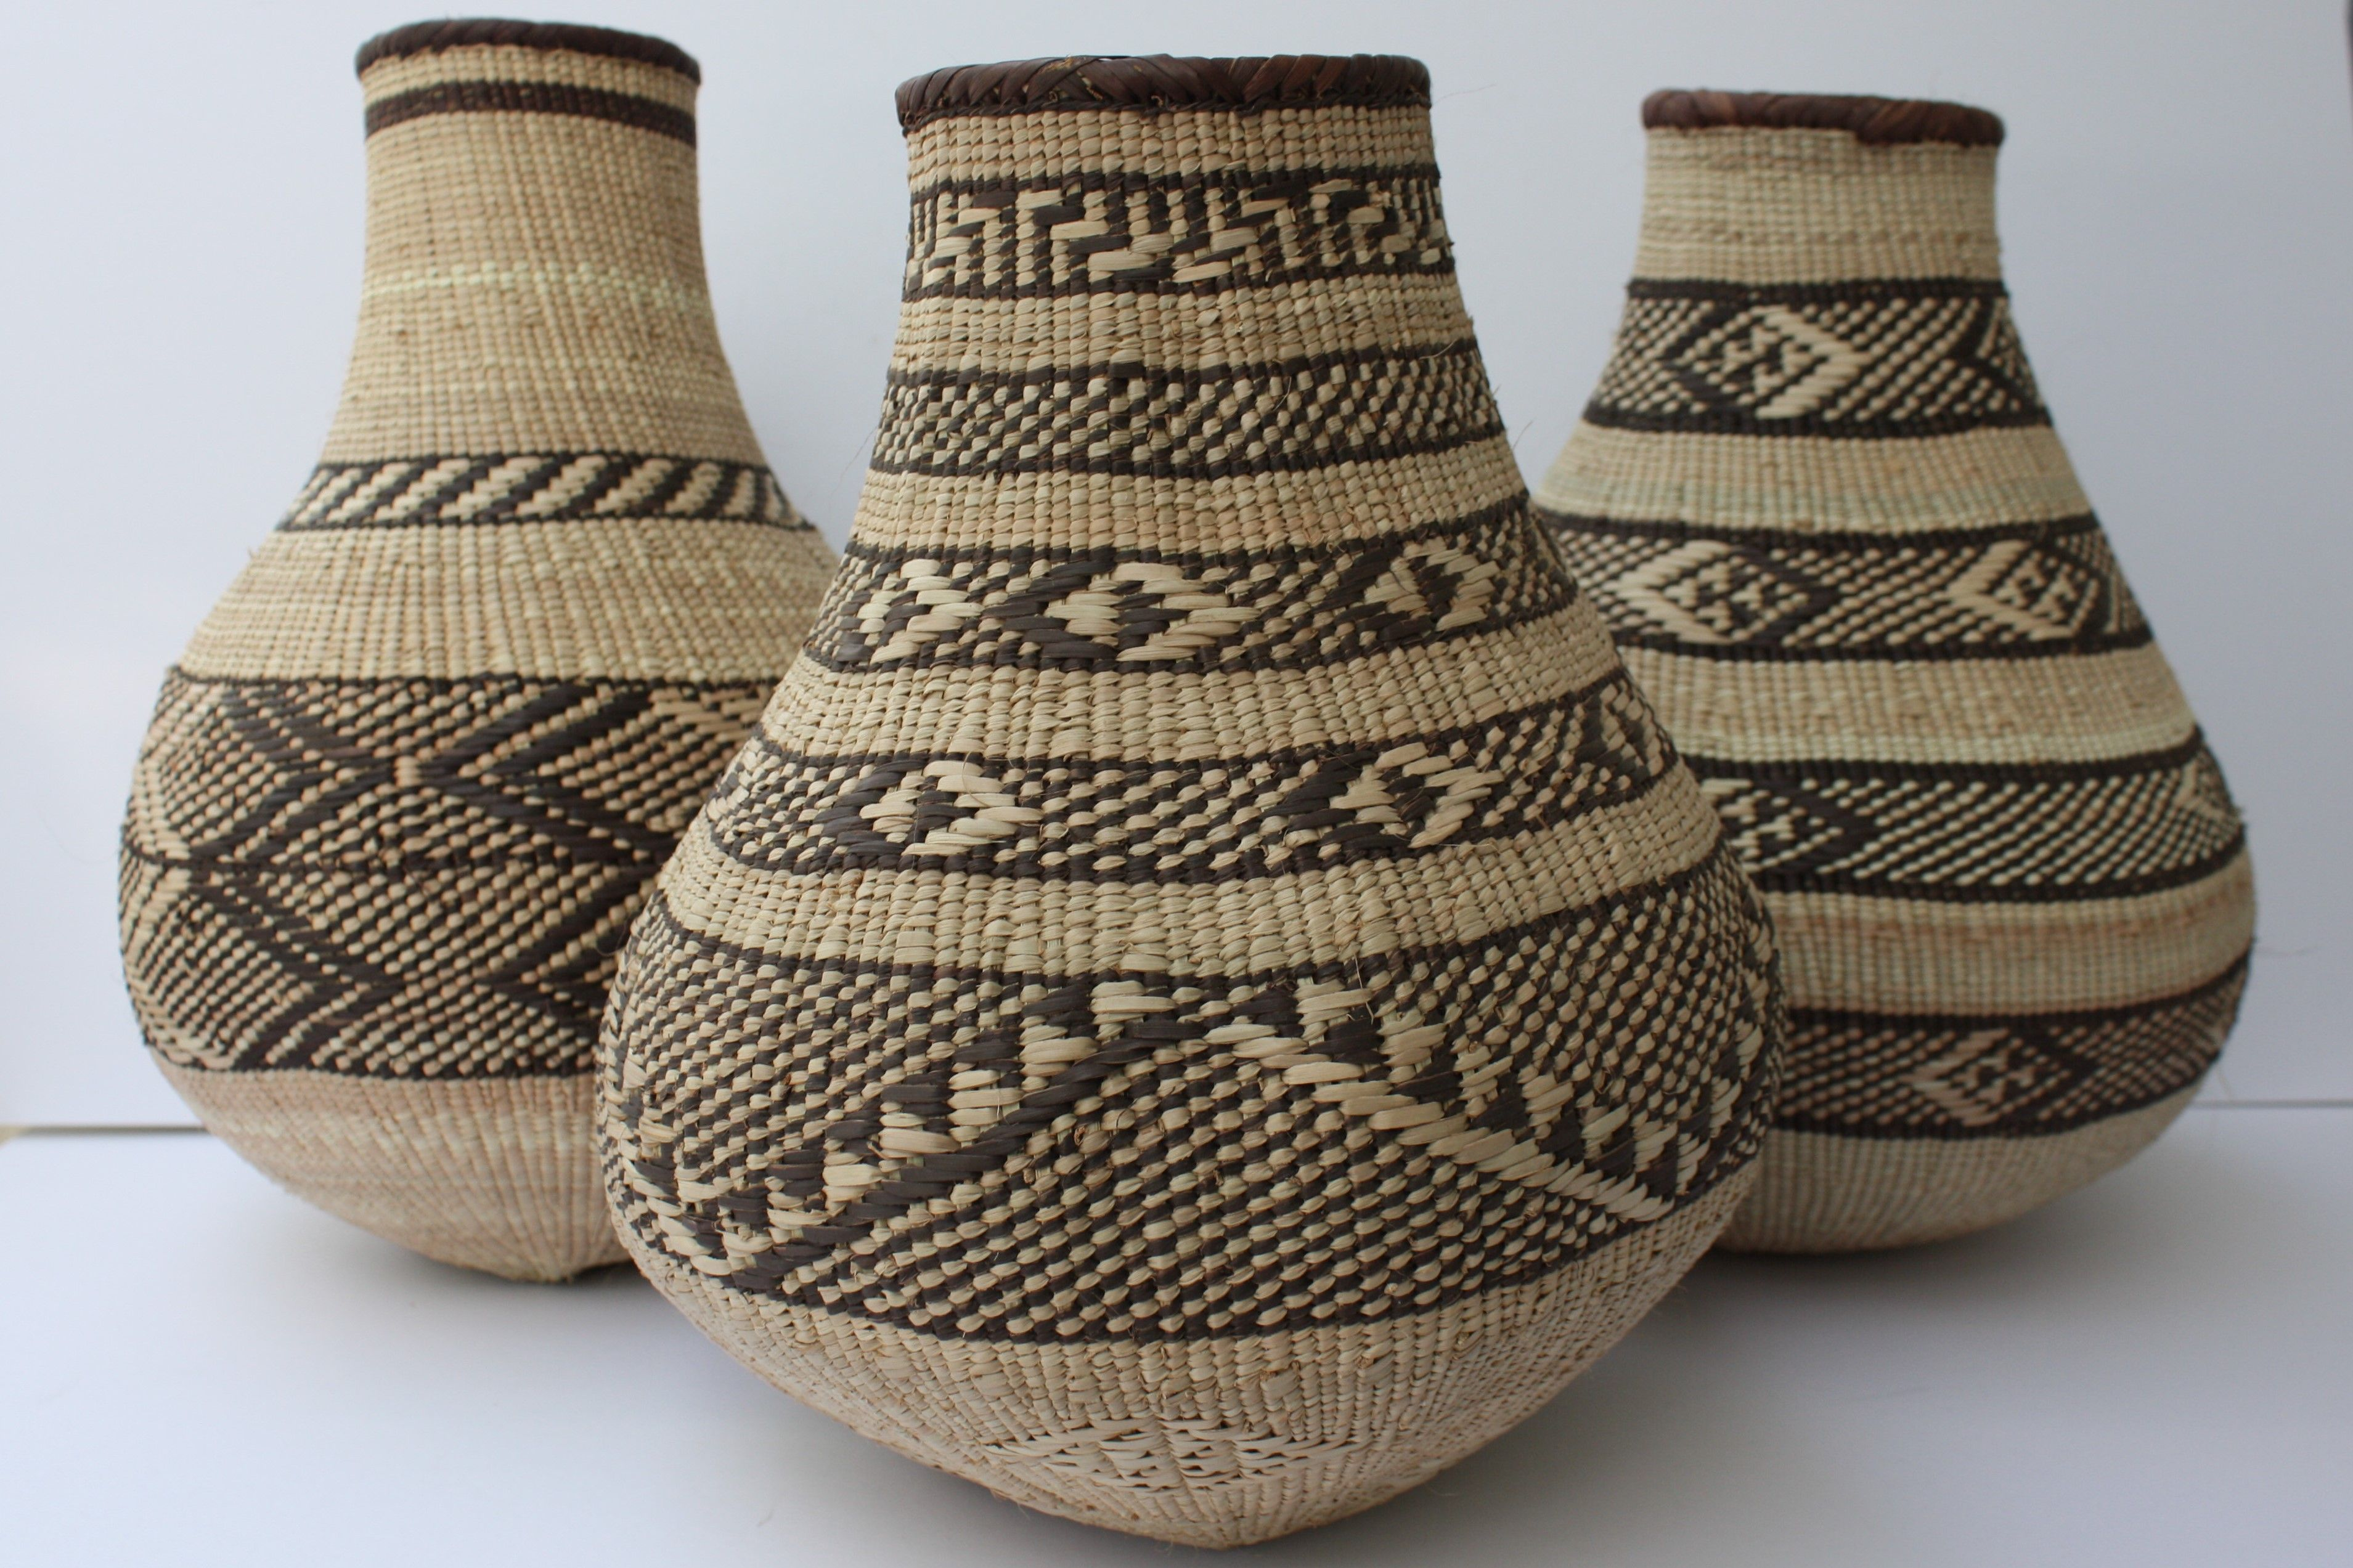 Beautiful Zimbabwean Binga Calabash Baskets, Woven By Talented Artisans, Available